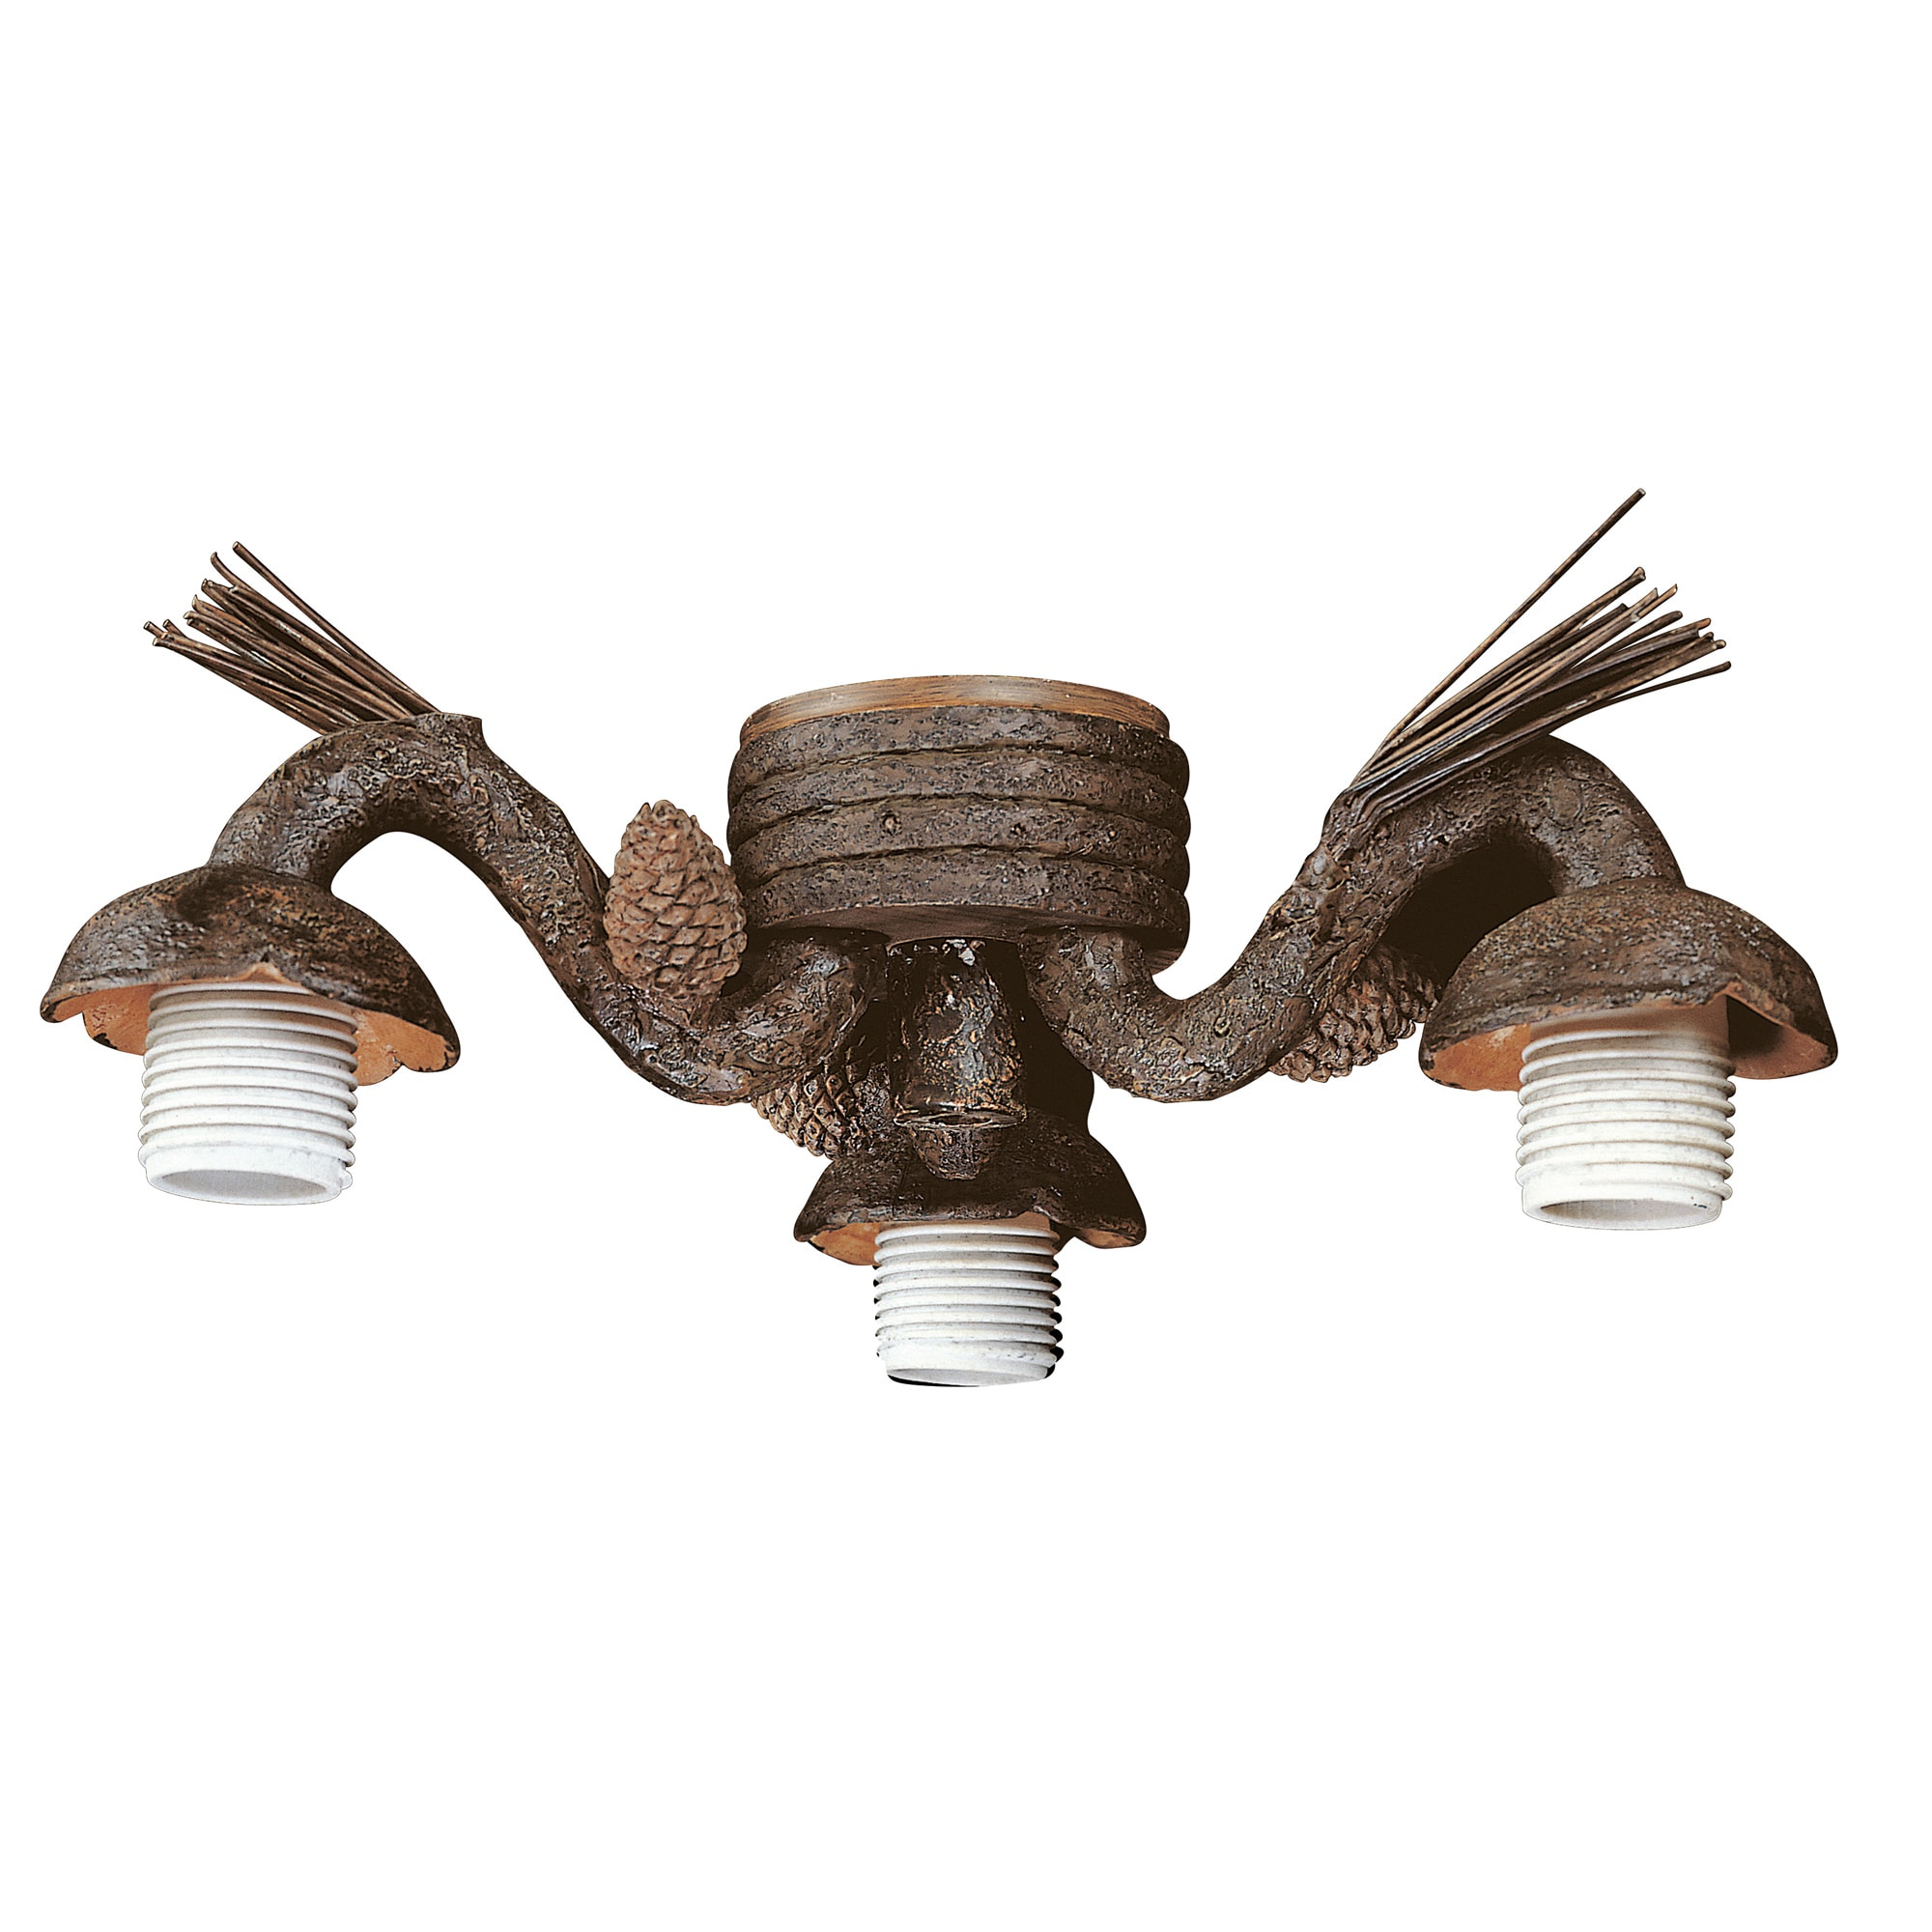 Three Light Old World Leather Ceiling Fan Light Kit